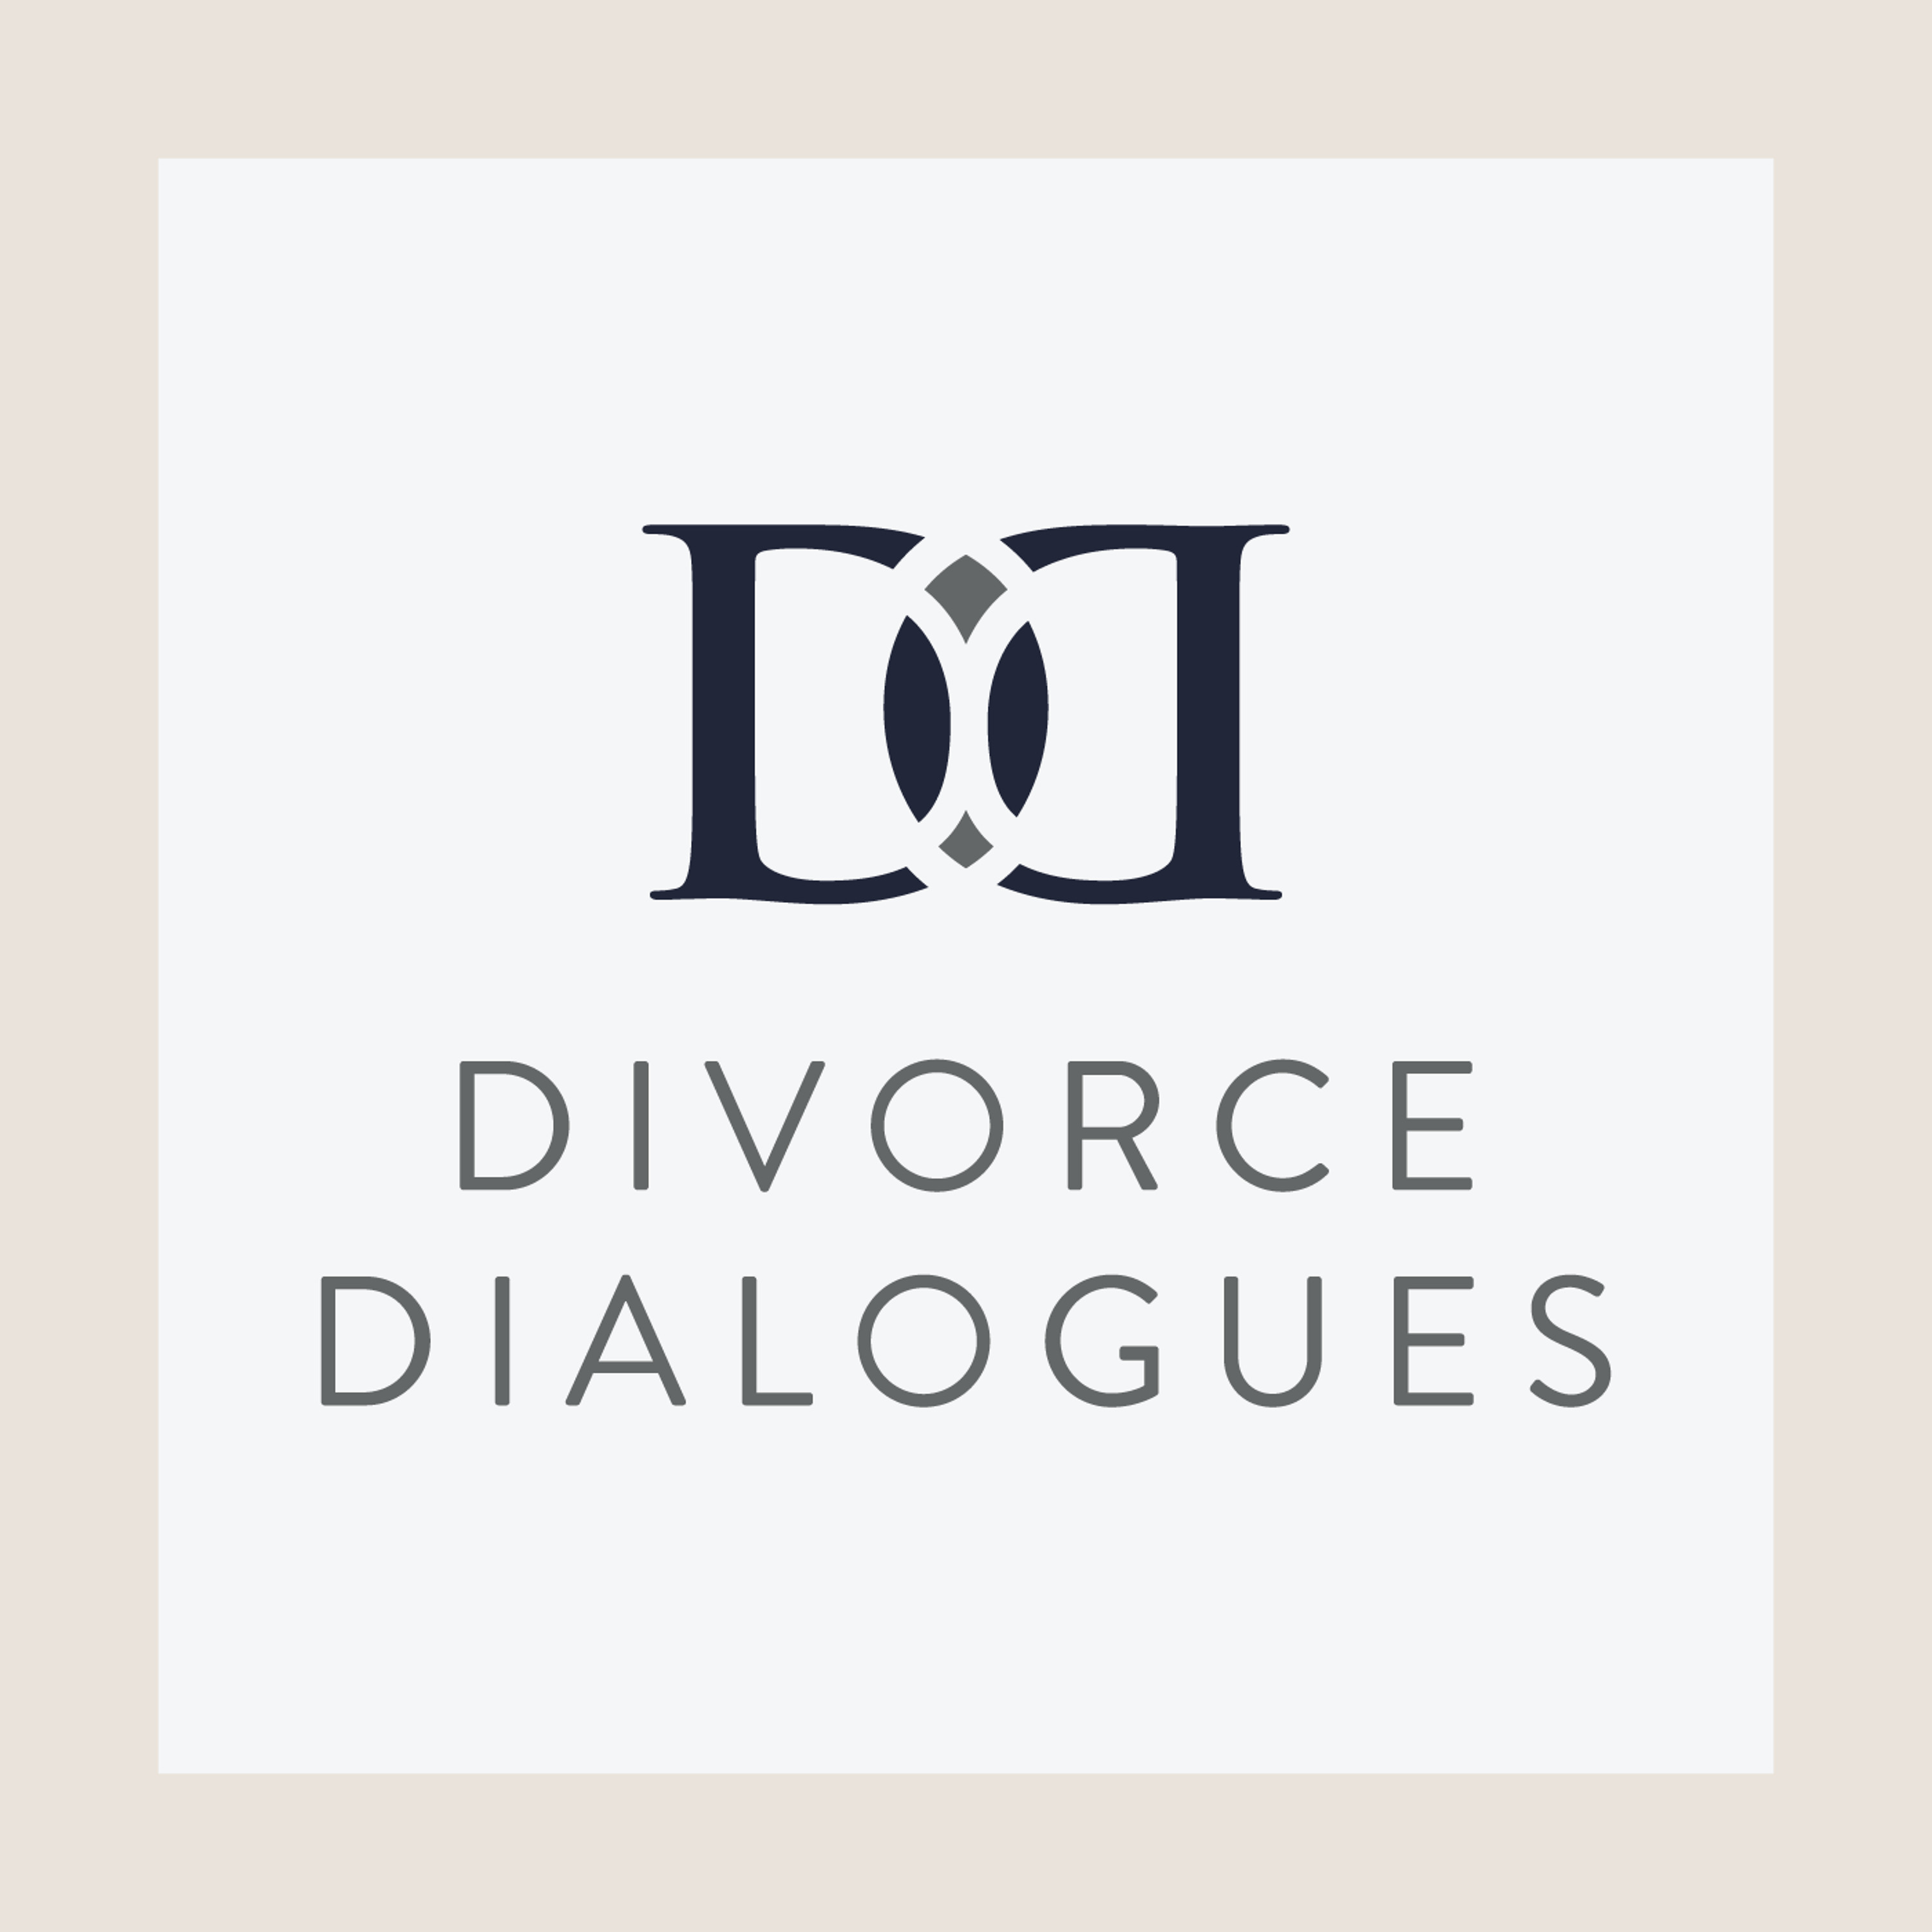 Divorce Dialogues - Mediation: Compromise or Negotiation? - with Gary Friedman